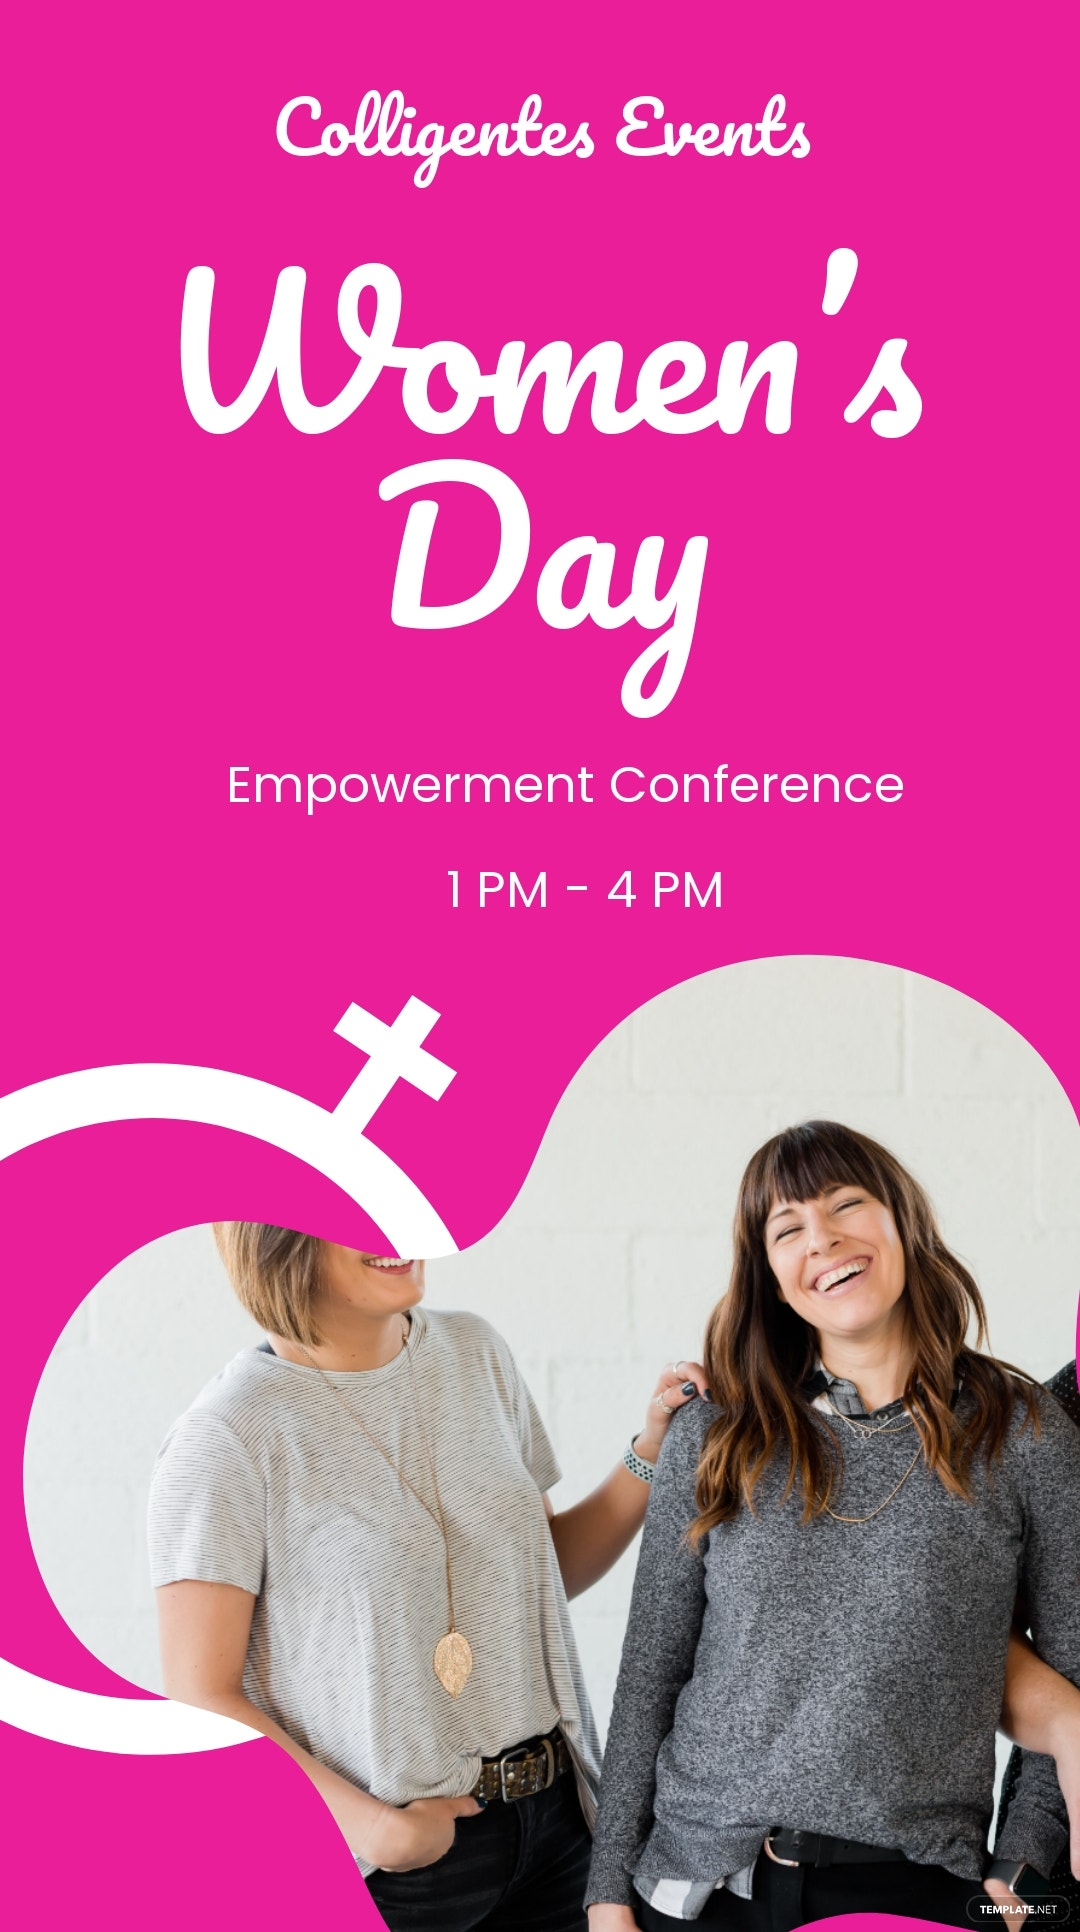 Women's Day Conference Instagram Story Template